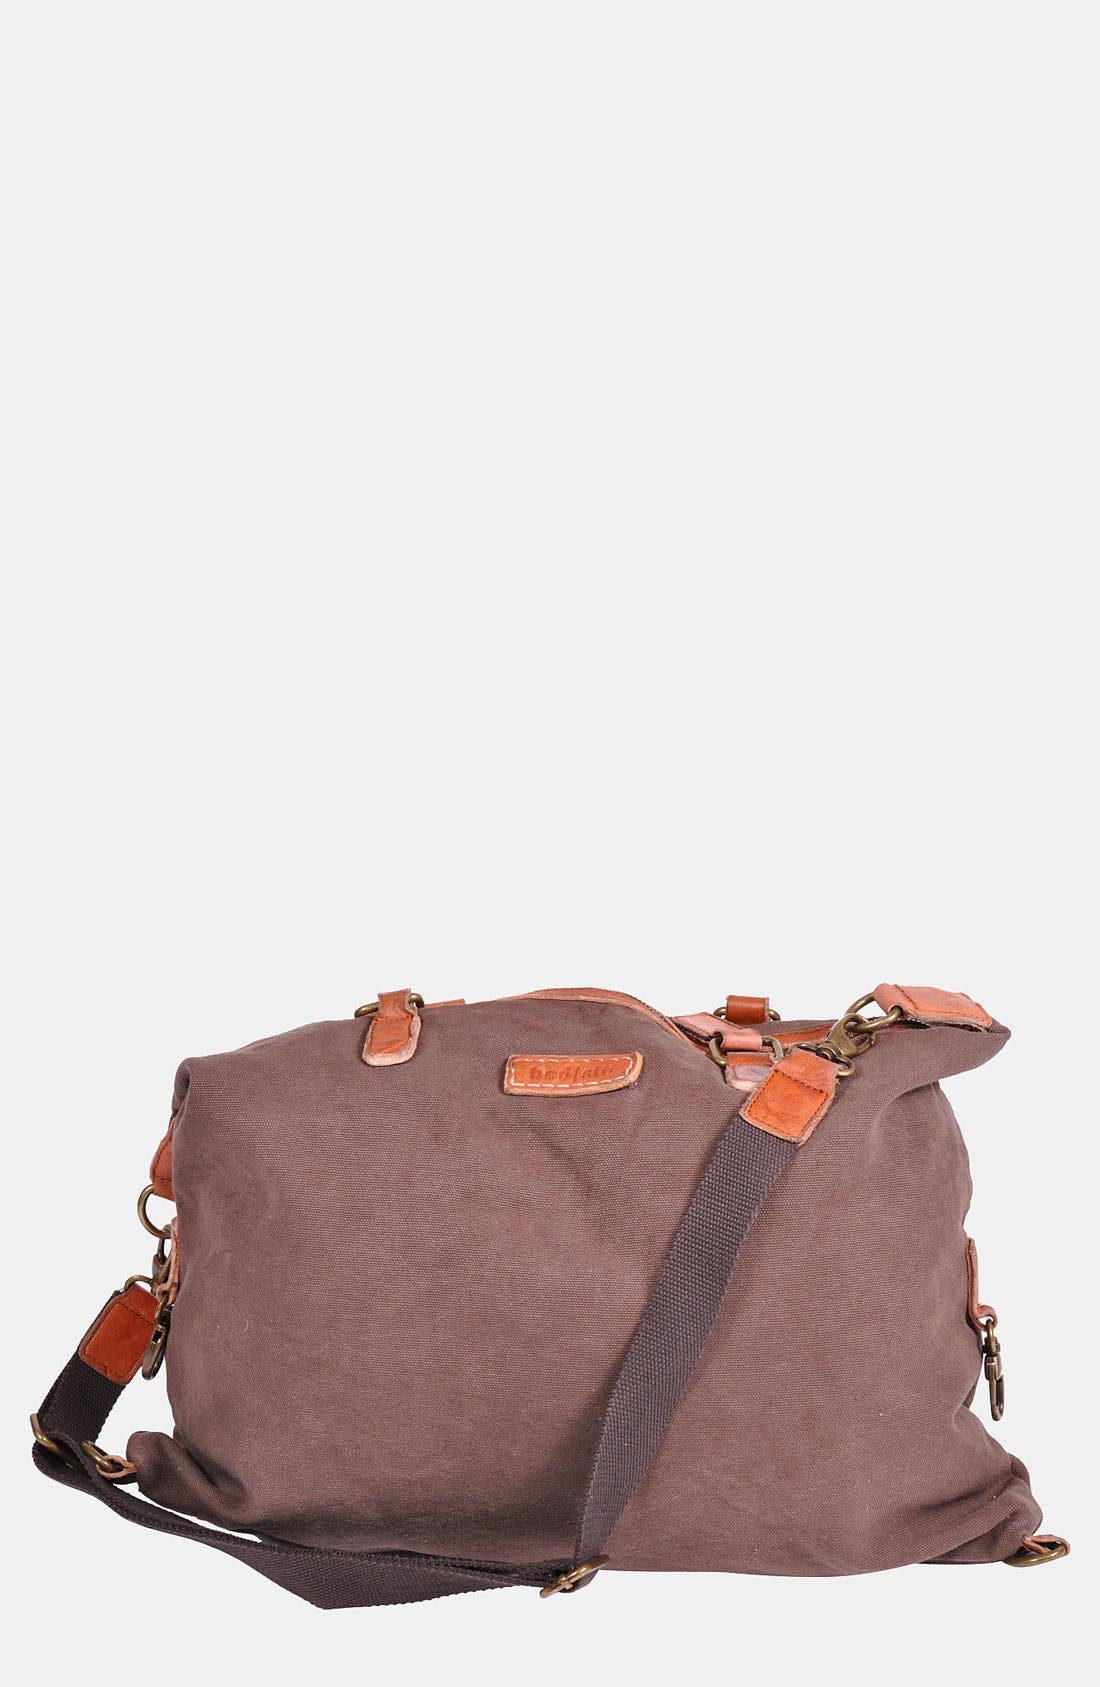 Main Image - Bed Stu 'Jeremy' Washed Canvas Messenger Bag